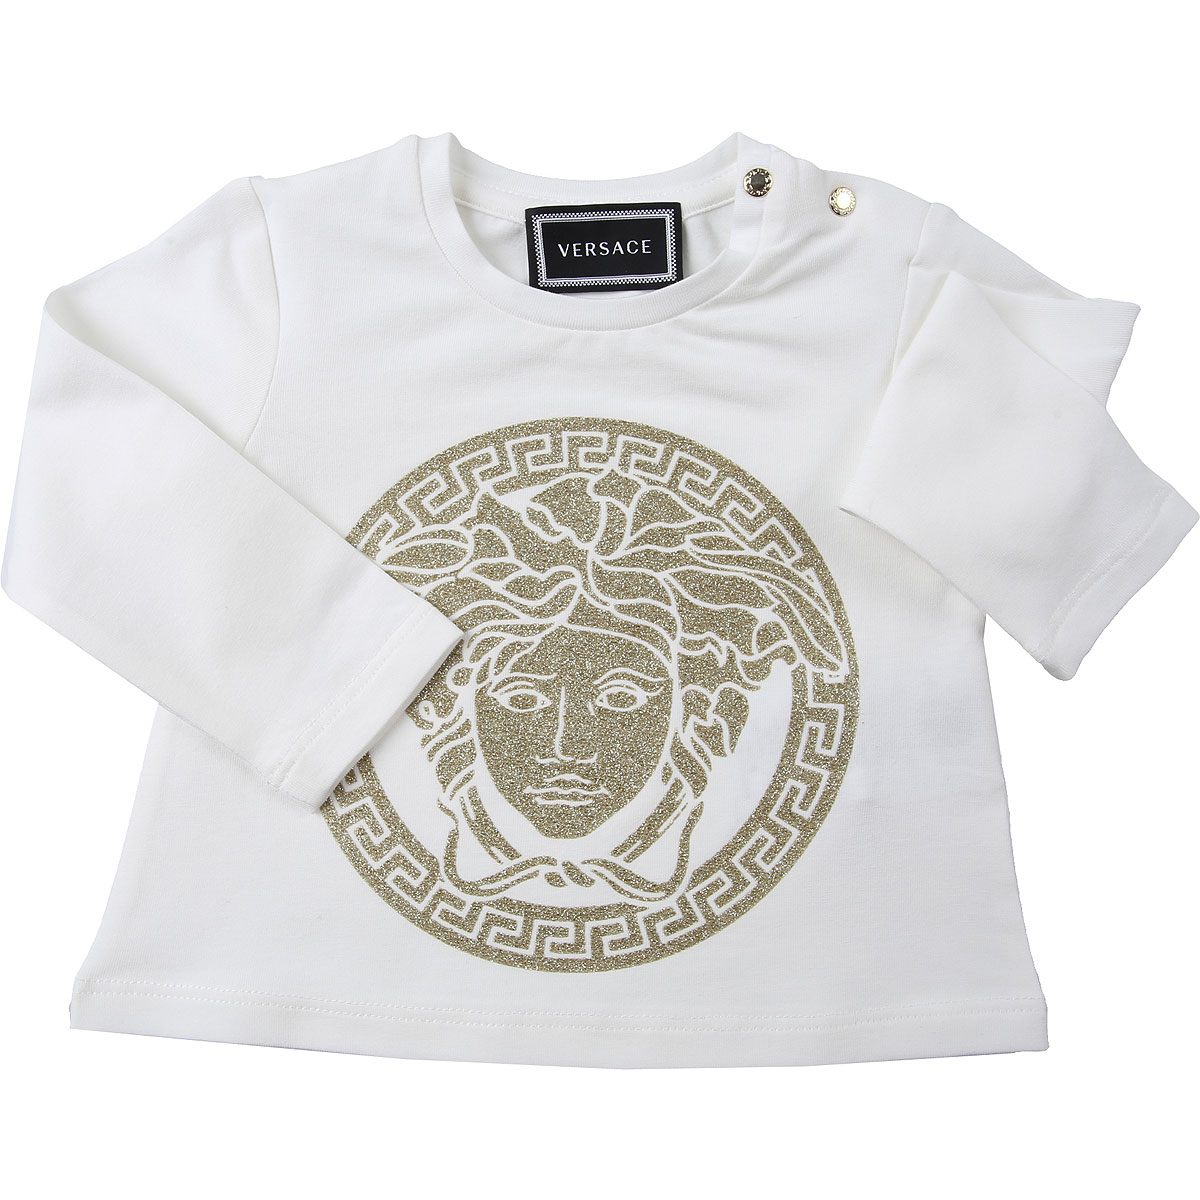 Versace Baby T-Shirt for Girls On Sale, White, Cotton, 2019, 12M 9M